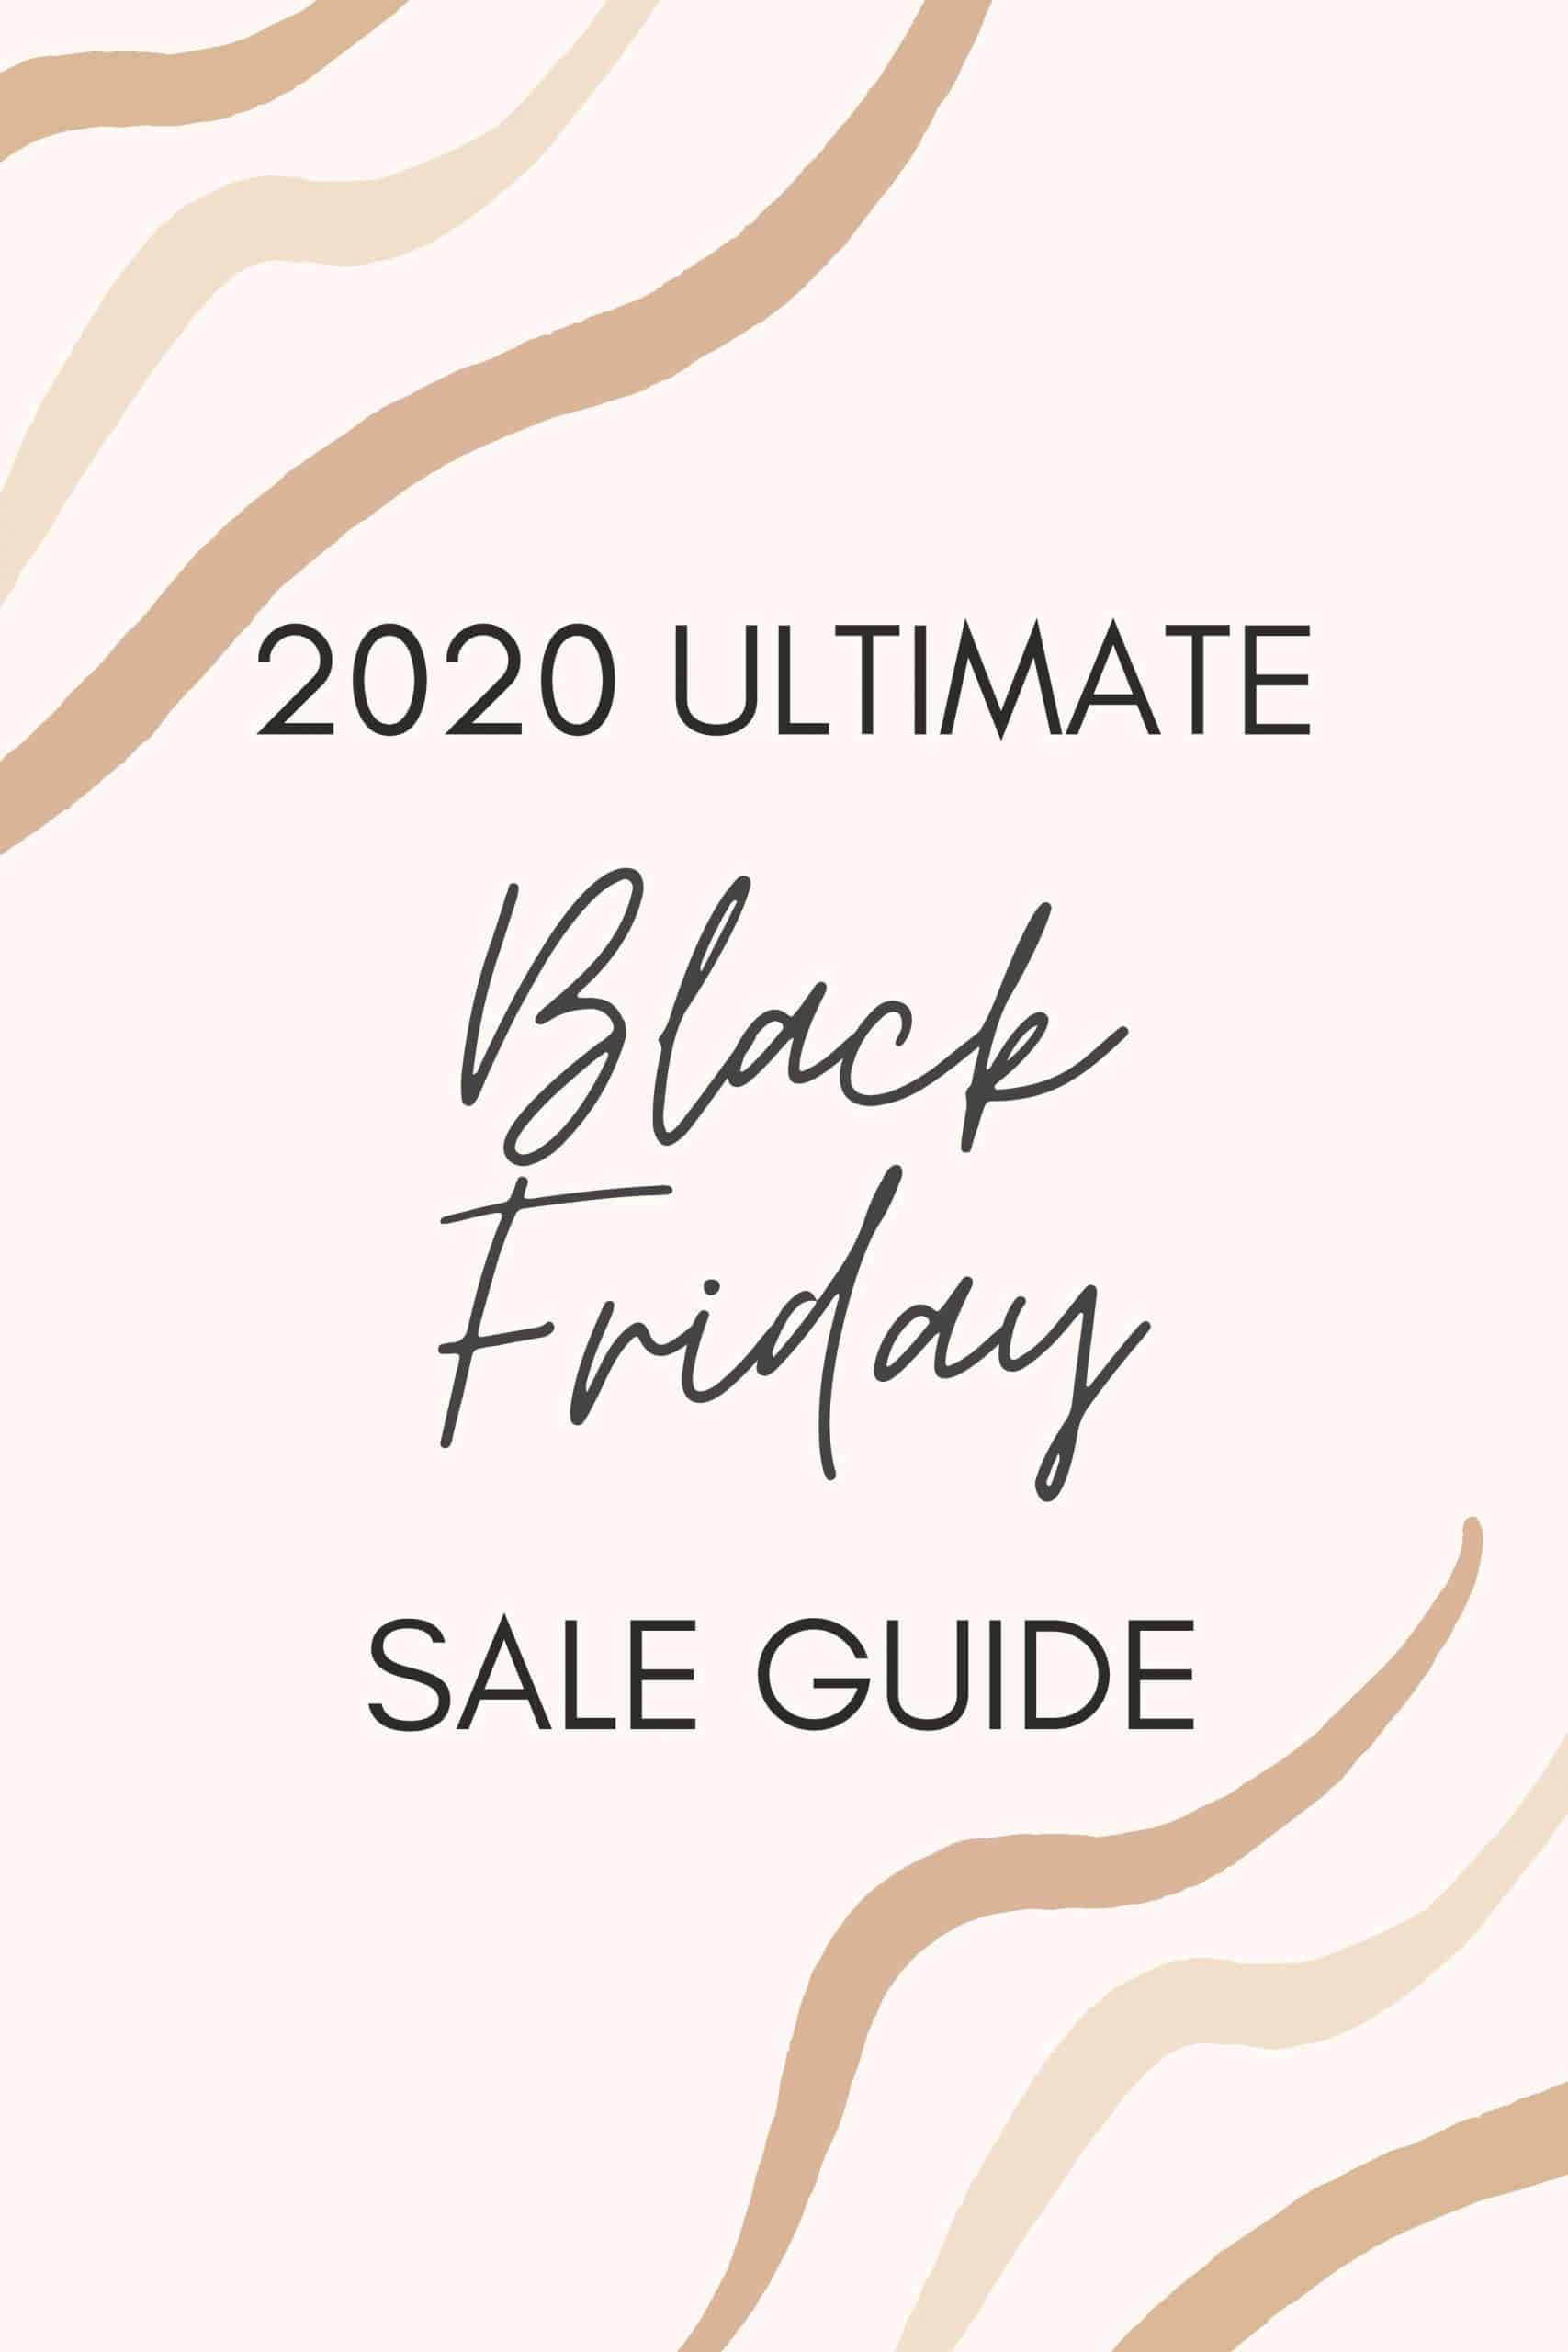 Black Friday Guide by popular Dallas life and style blog, Glamorous Versatility: Pinterest image of Black Friday Sale Guide.